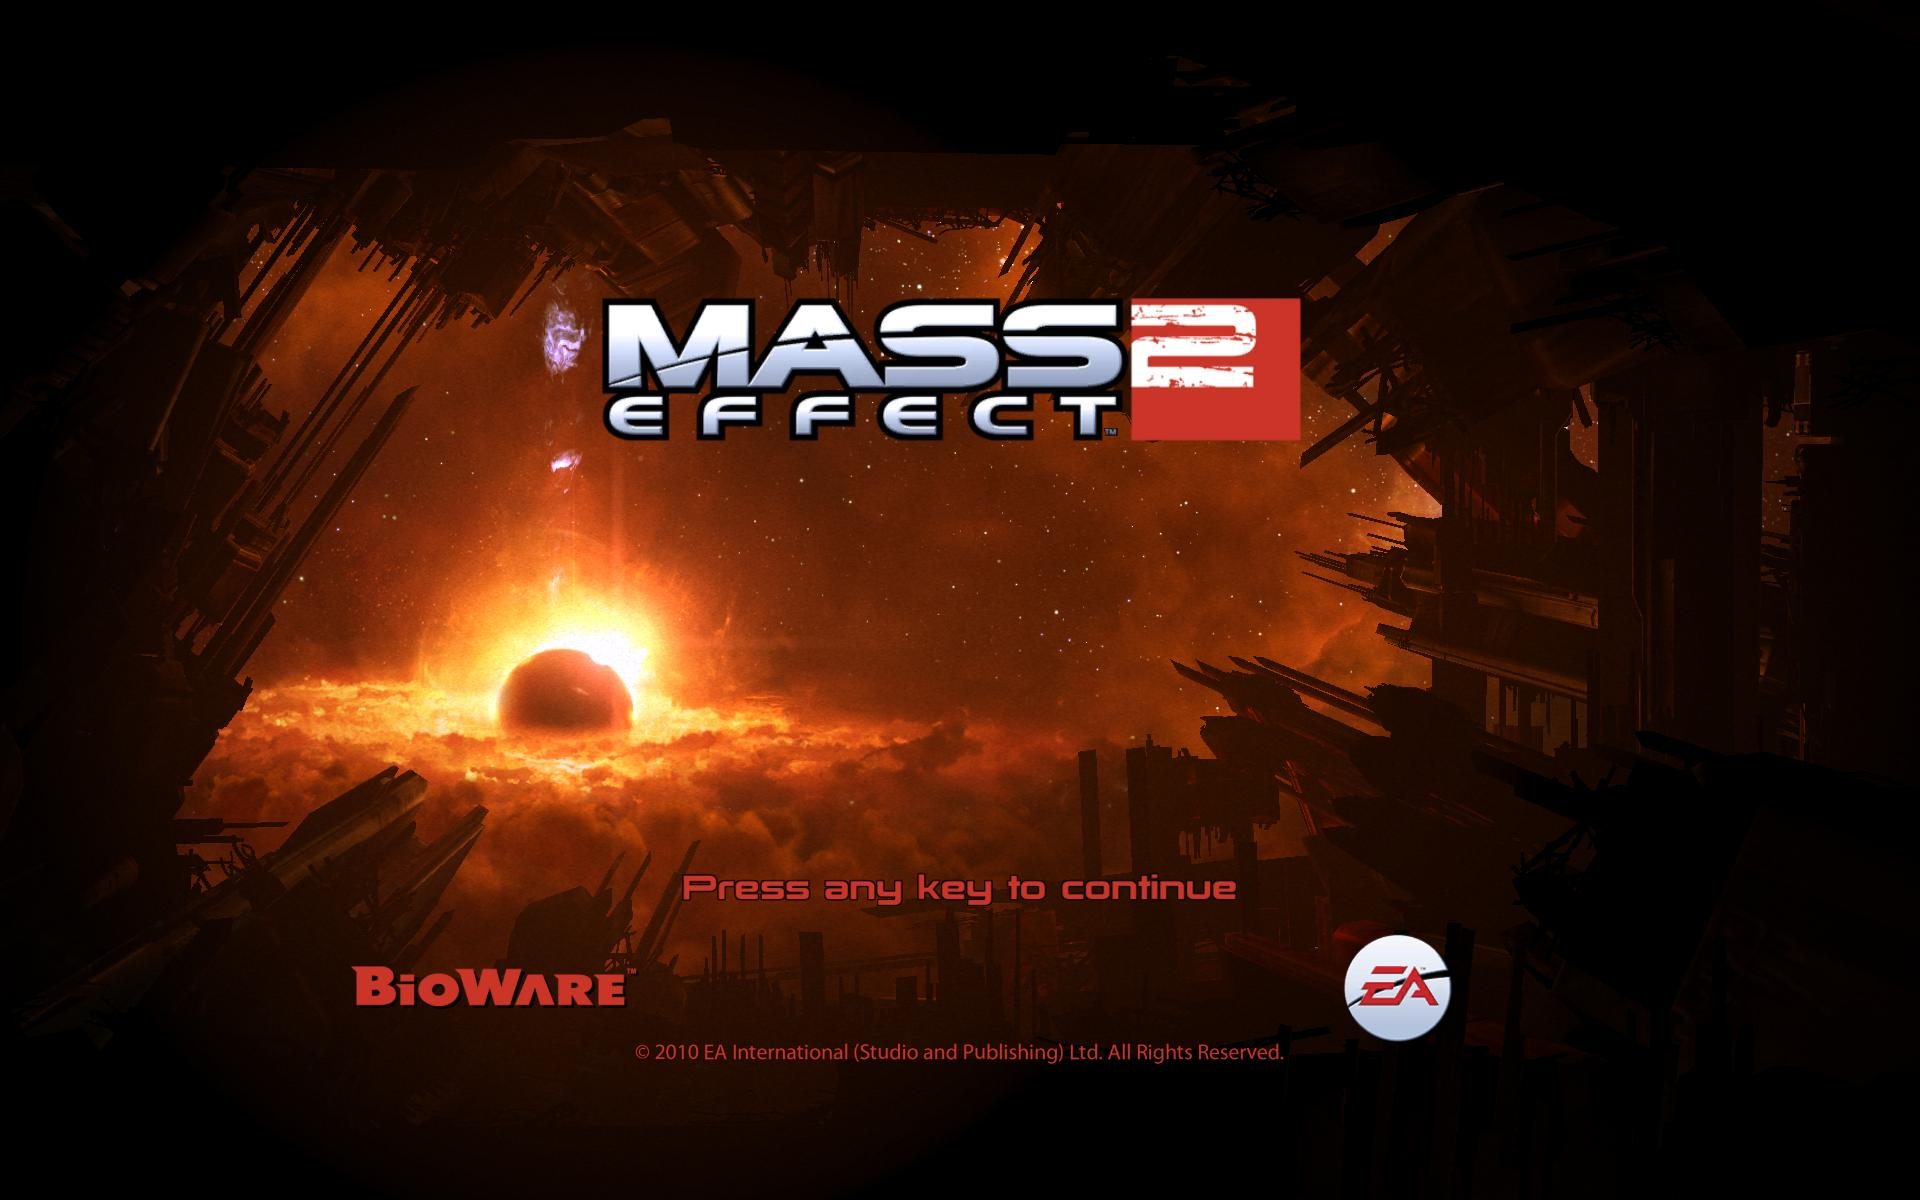 mass effect epic black hole - photo #24